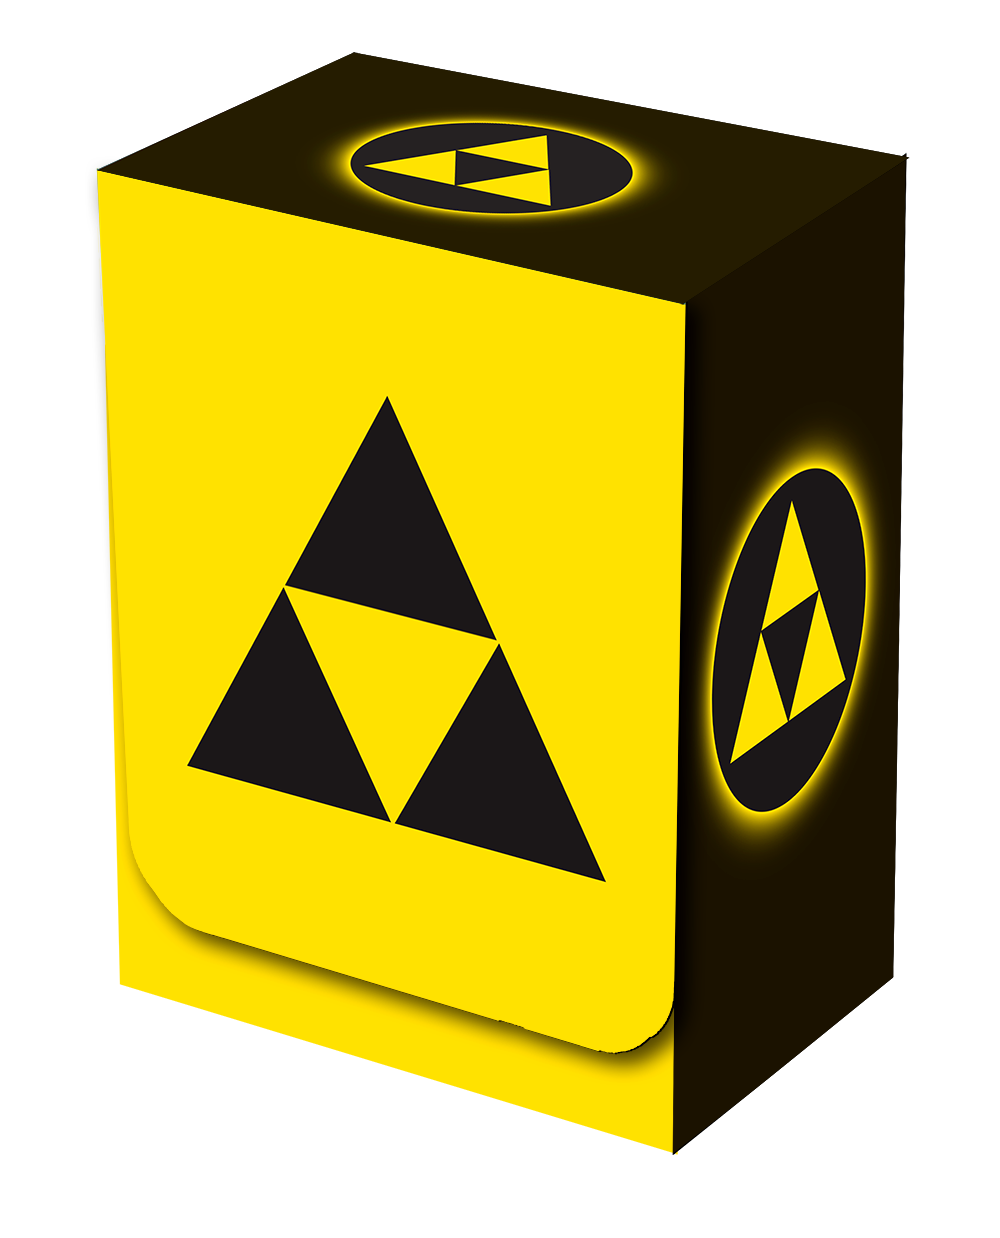 Deckbox - Absolute Iconic Triforce